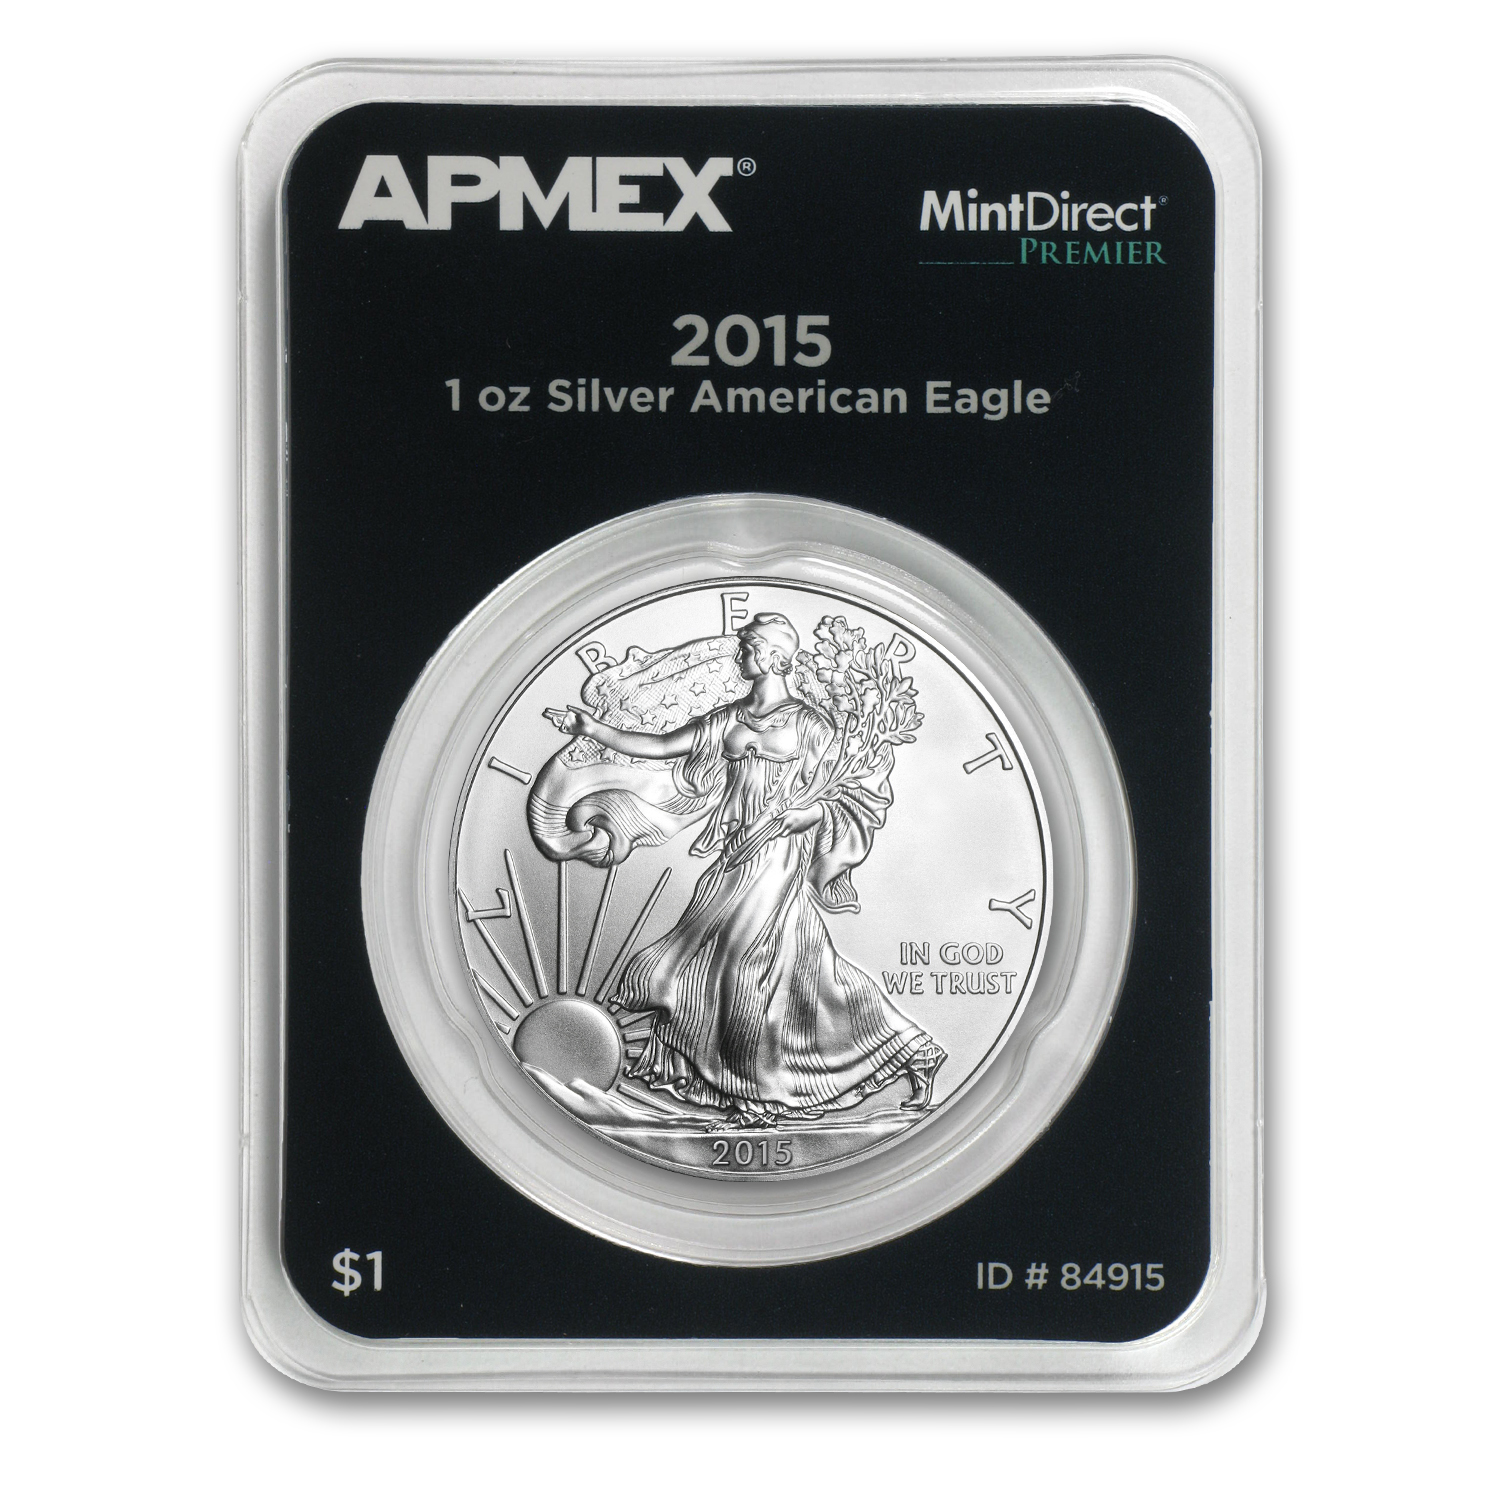 2015 1 oz Silver Eagle (MintDirect® Single, Premier)